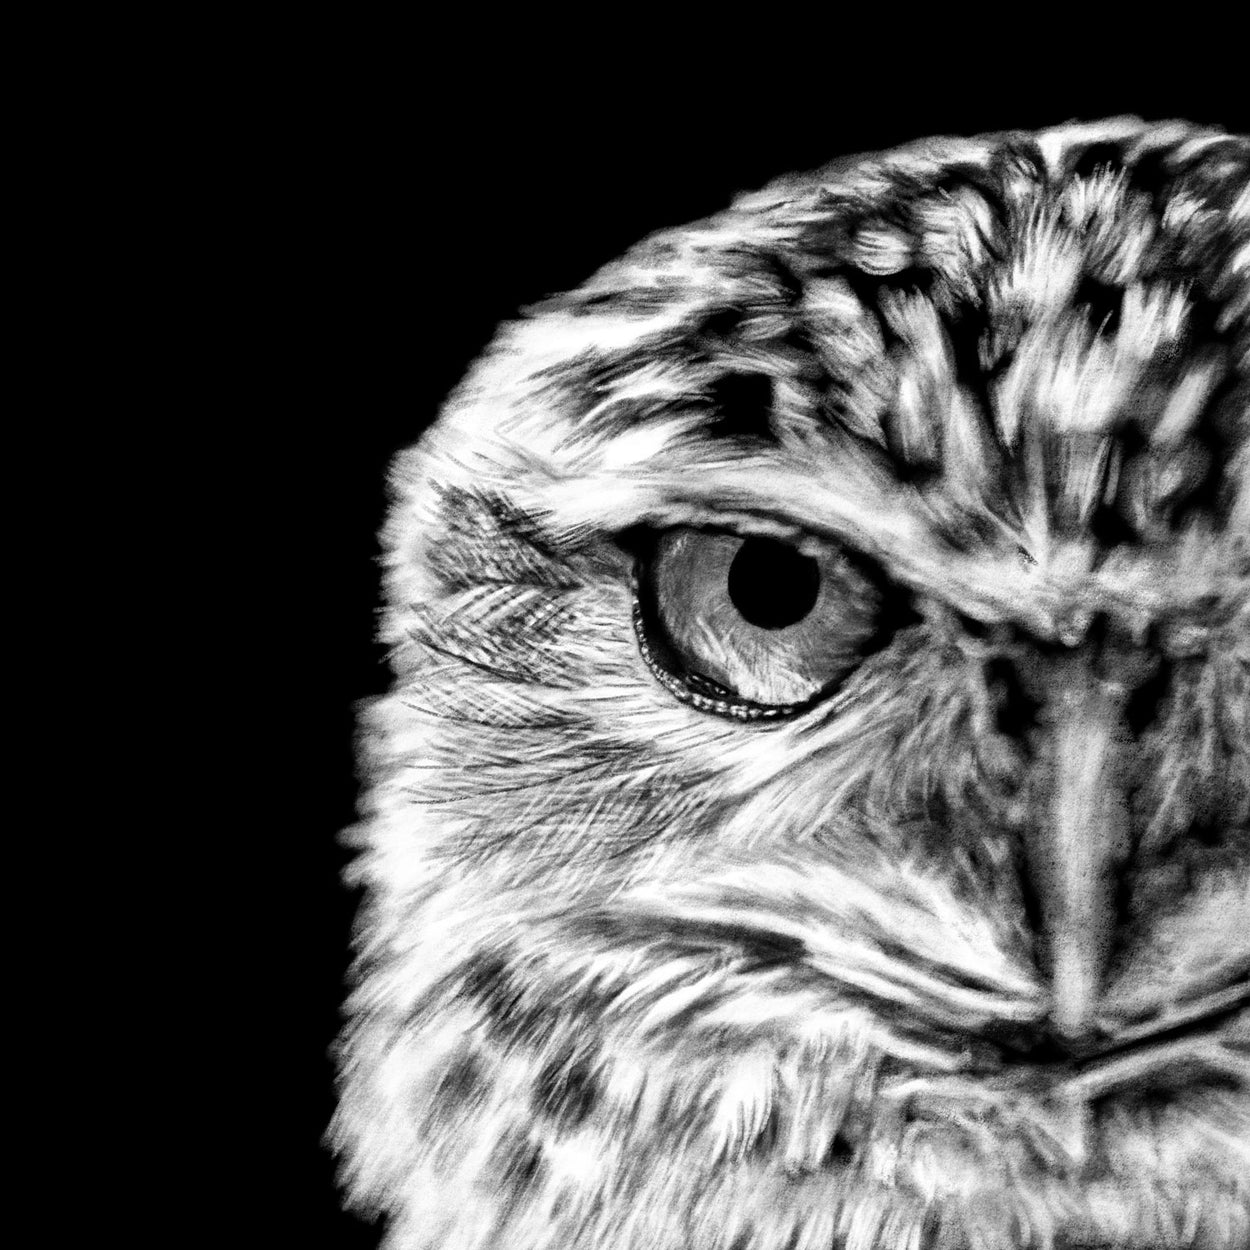 Burrowing Owl Procreate Digital Drawing Close-up - The Thriving Wild